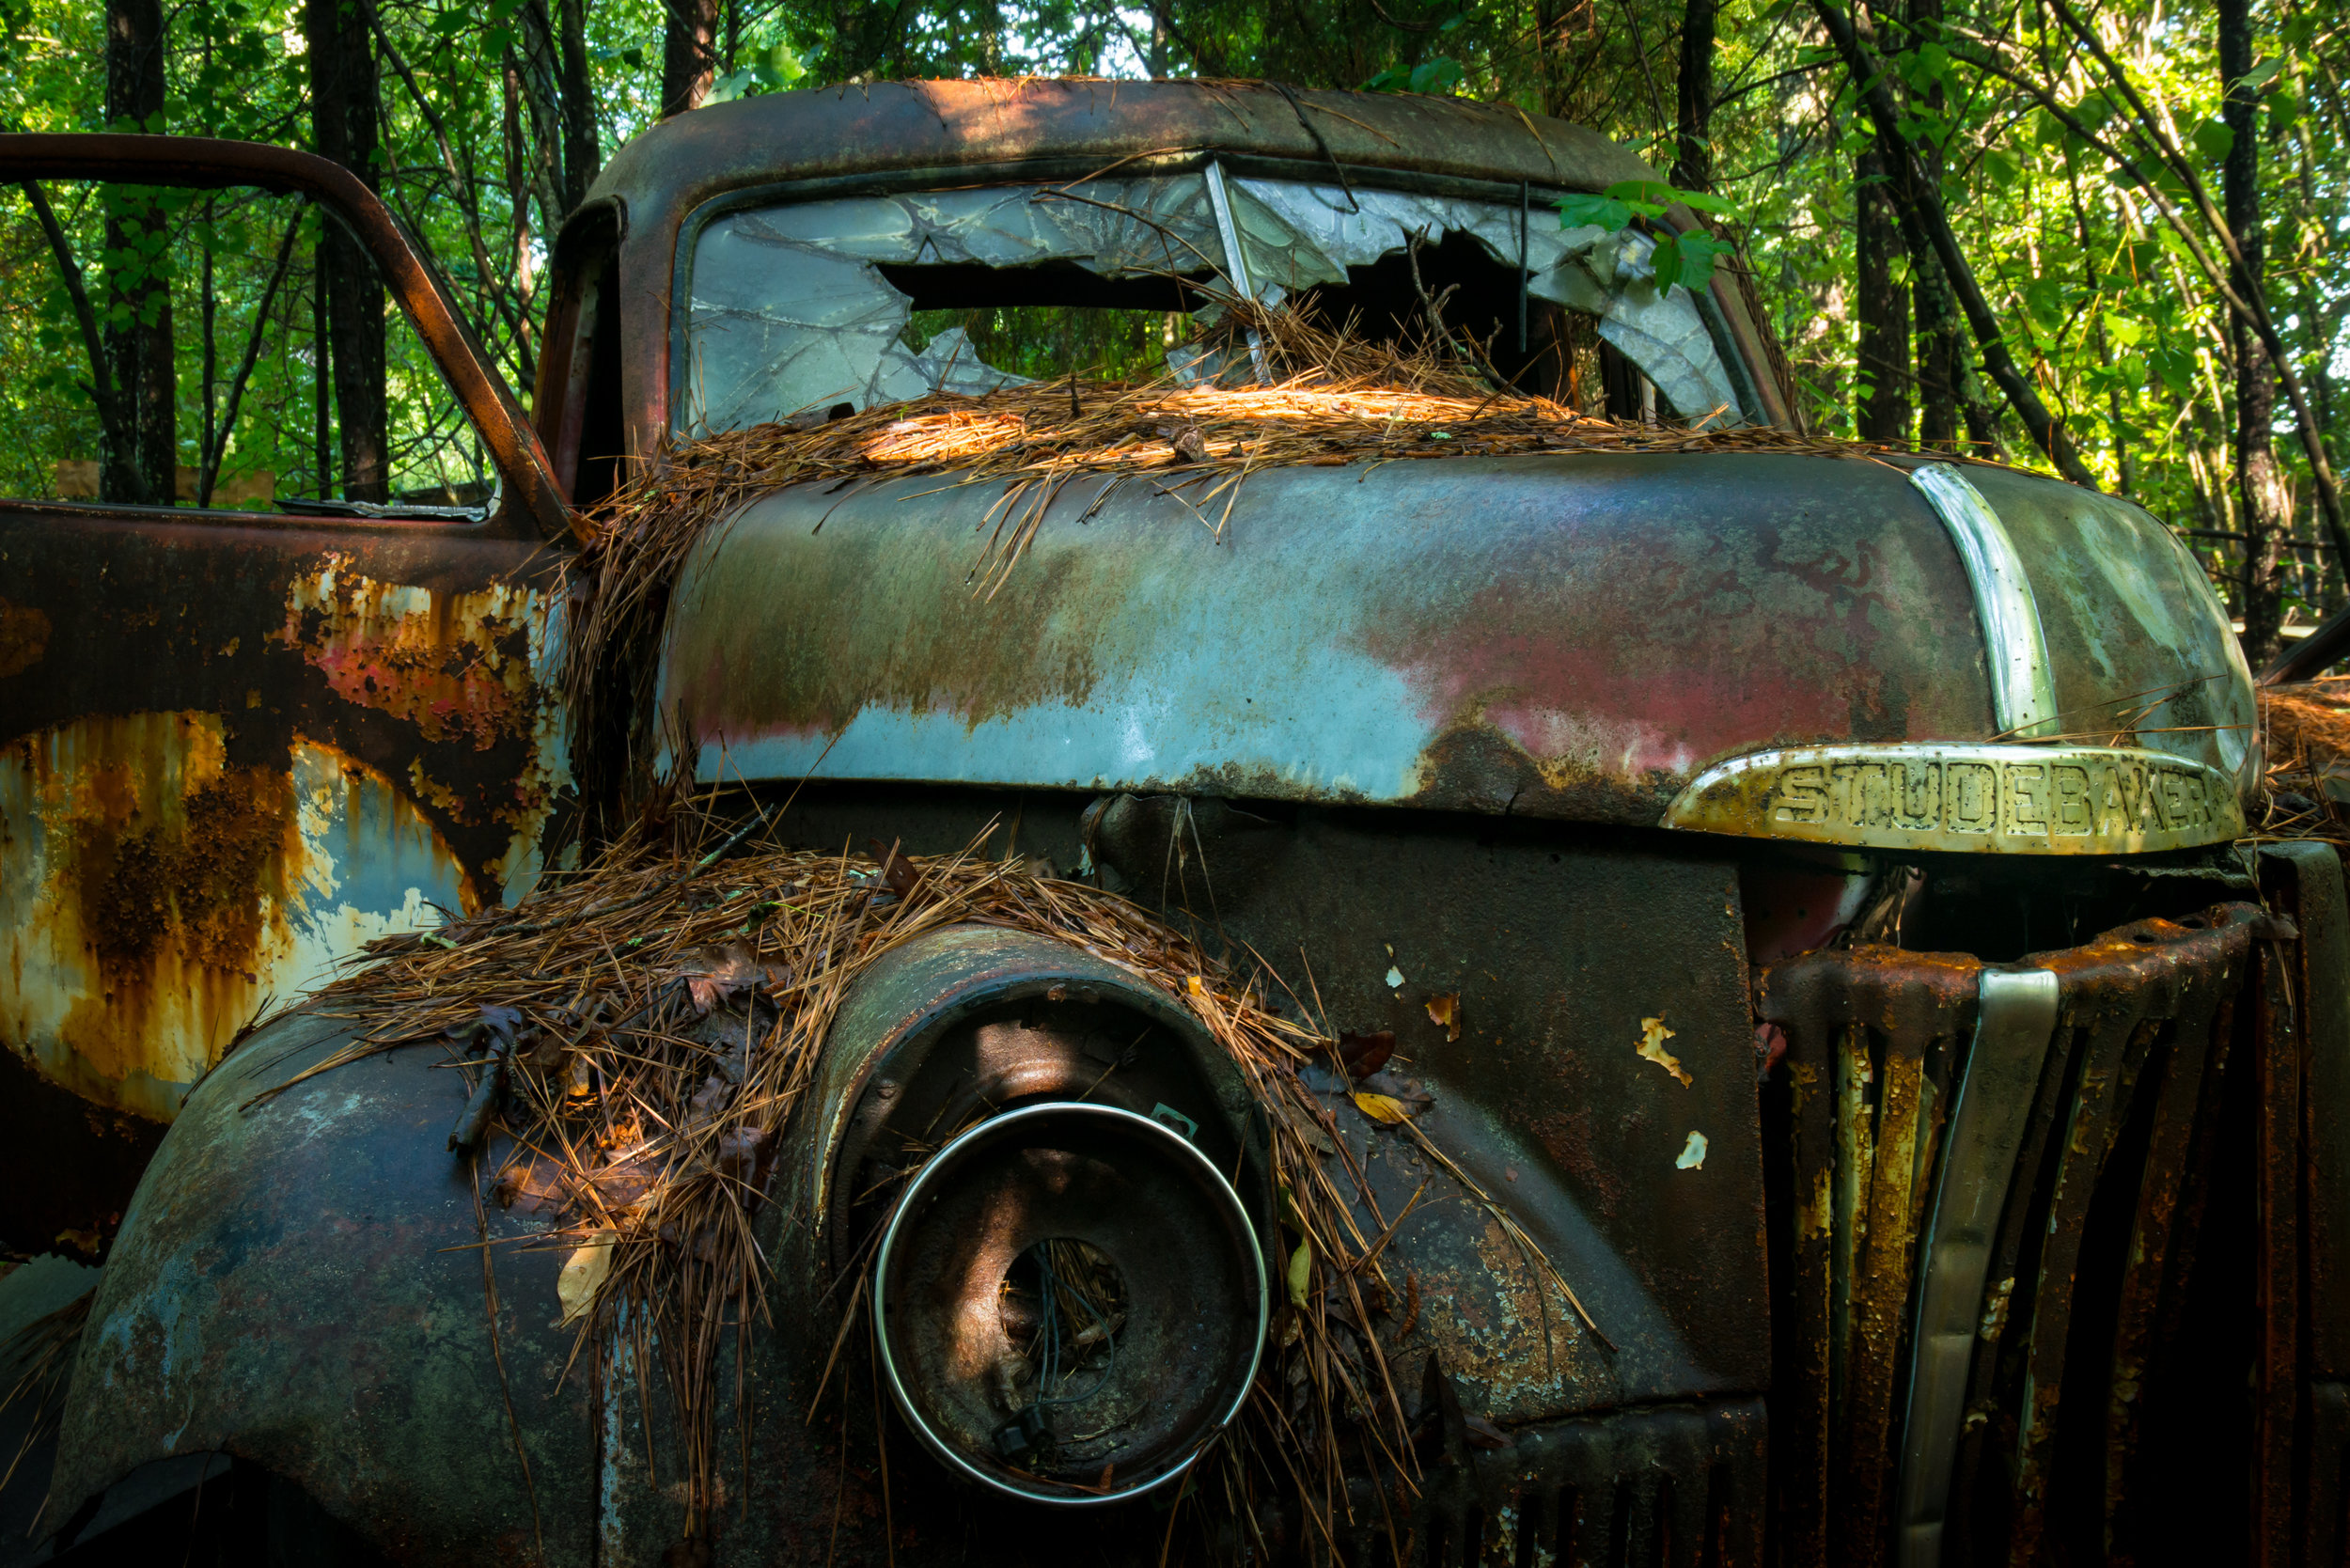 My dad worked for Studabaker when I was a young boy. THis is a survivor at  Old Car City USA  in White GA.